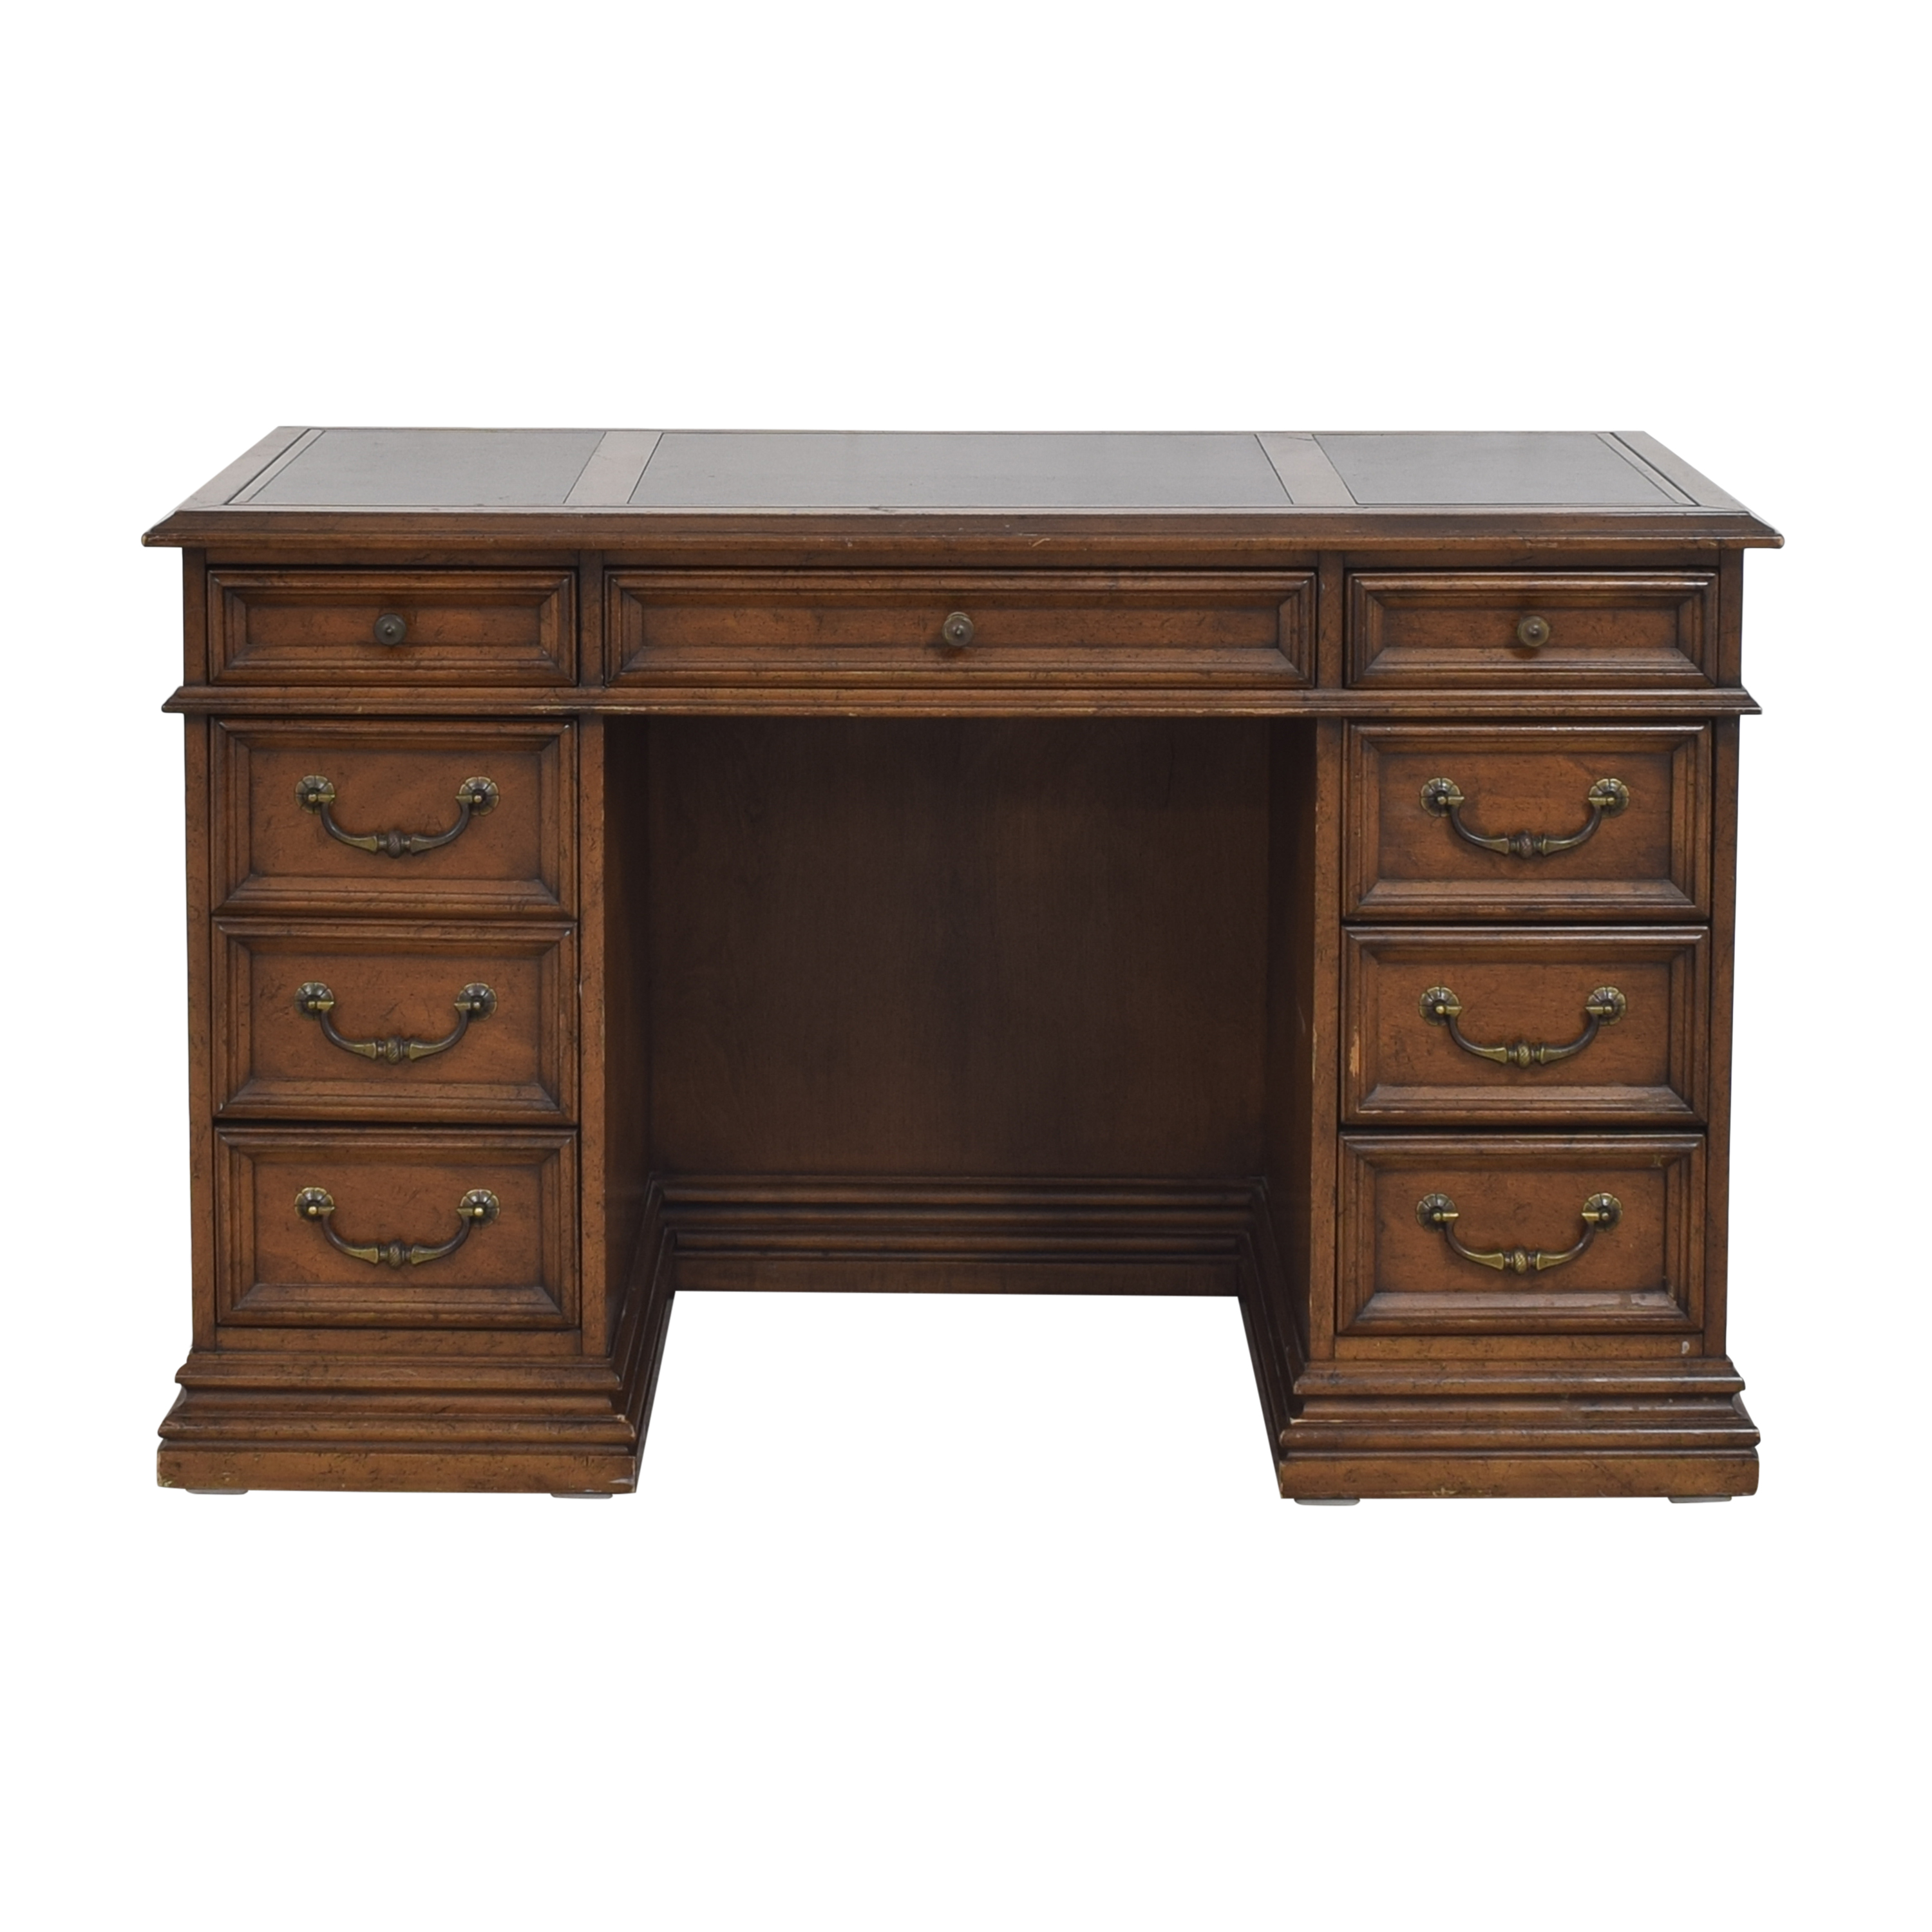 Sligh Furniture Sligh Furniture Executive Desk brown and black